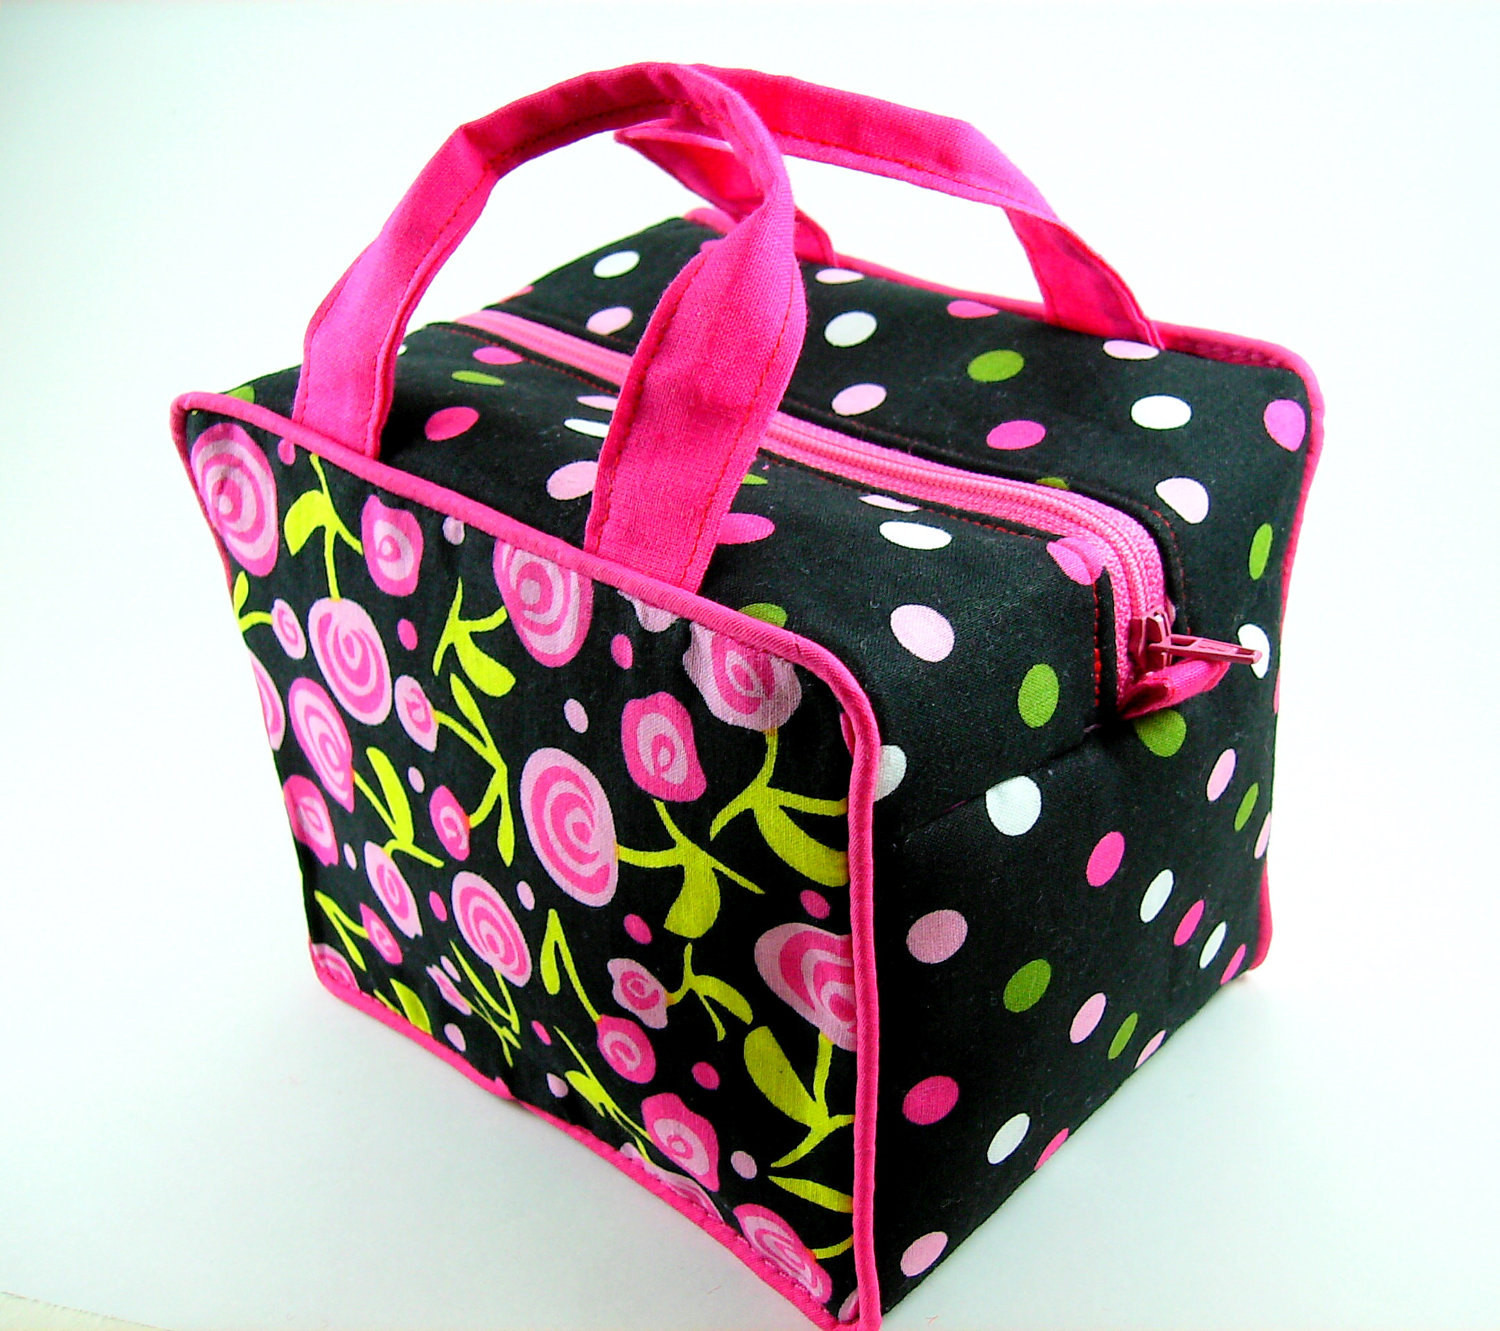 Awesome Boxy Cosmetic Bag Sewing Pattern Pdf Tutorial No Exposed Makeup Bag Pattern Of Wonderful 47 Photos Makeup Bag Pattern